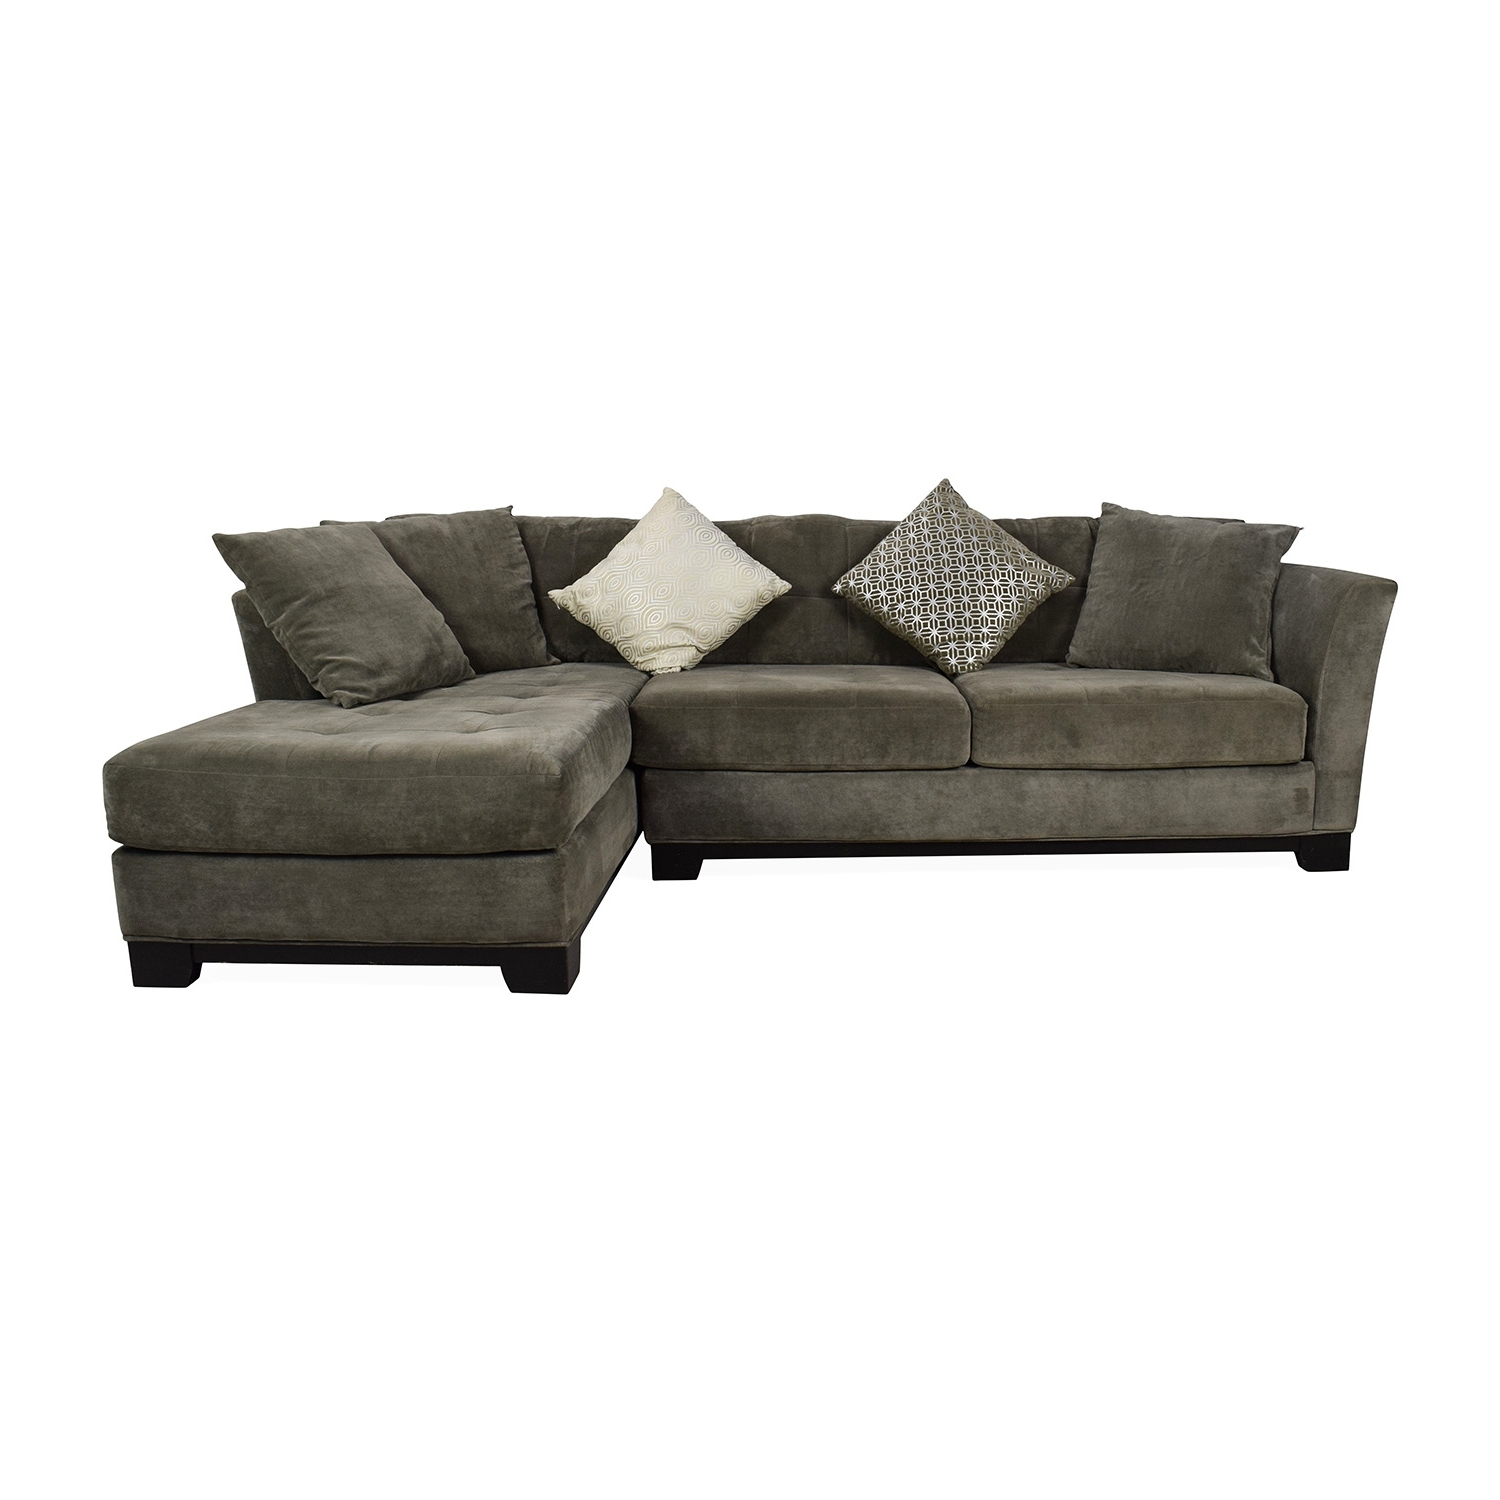 [%50% Off – Macy's Macy's Gray Sectional Couch With Chaise / Sofas Pertaining To Well Known Macys Sectional Sofas|macys Sectional Sofas Regarding Well Known 50% Off – Macy's Macy's Gray Sectional Couch With Chaise / Sofas|2018 Macys Sectional Sofas Inside 50% Off – Macy's Macy's Gray Sectional Couch With Chaise / Sofas|popular 50% Off – Macy's Macy's Gray Sectional Couch With Chaise / Sofas Regarding Macys Sectional Sofas%] (View 13 of 20)